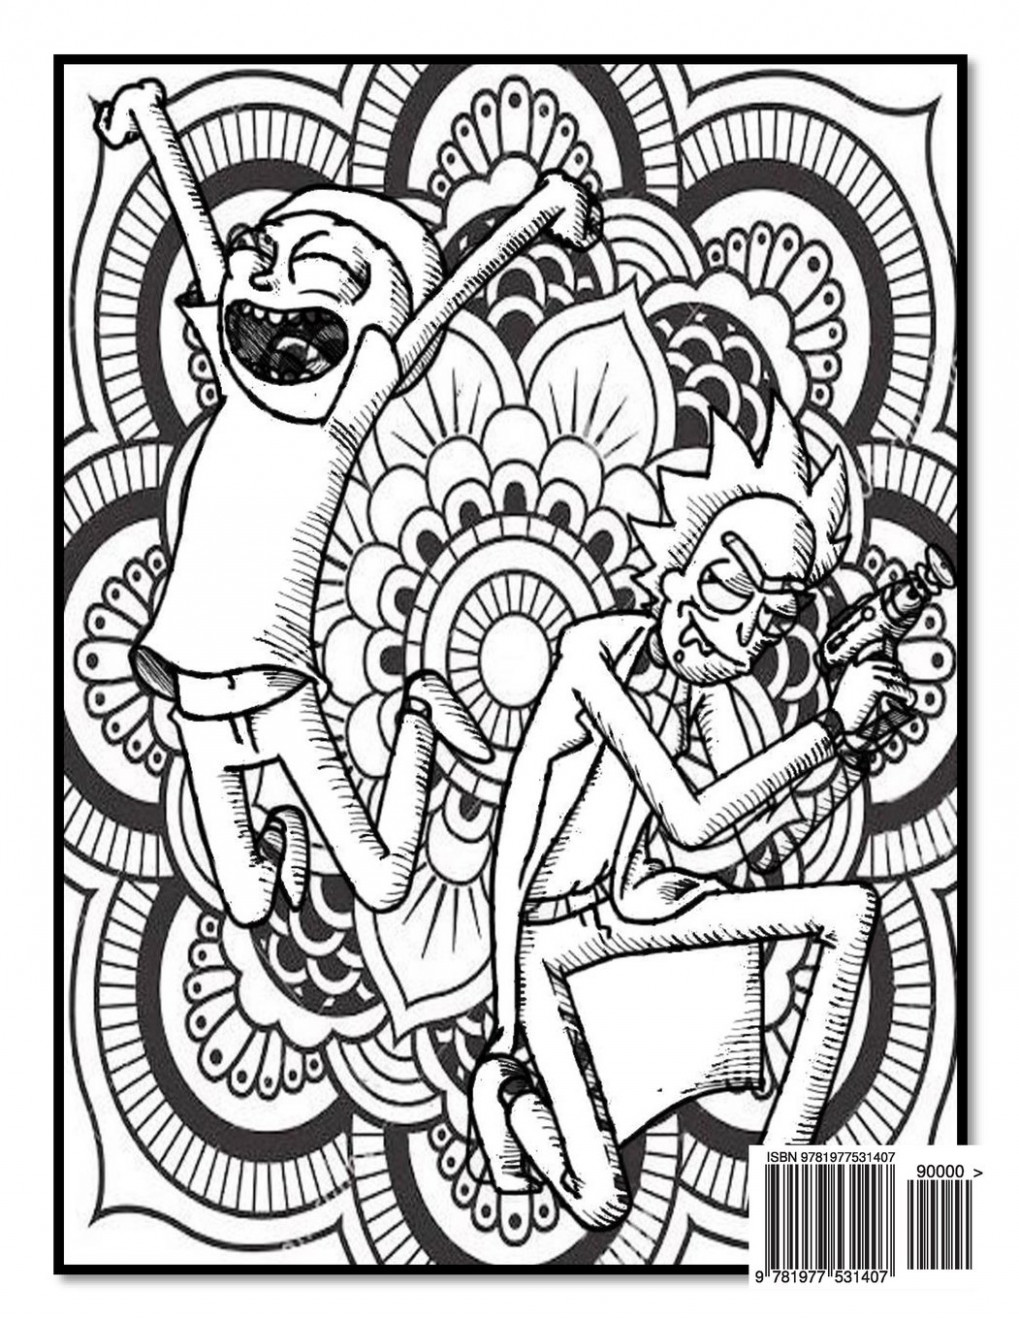 Amazon.com: Rick and Morty Coloring Book - Rick and Morty Mandala ...